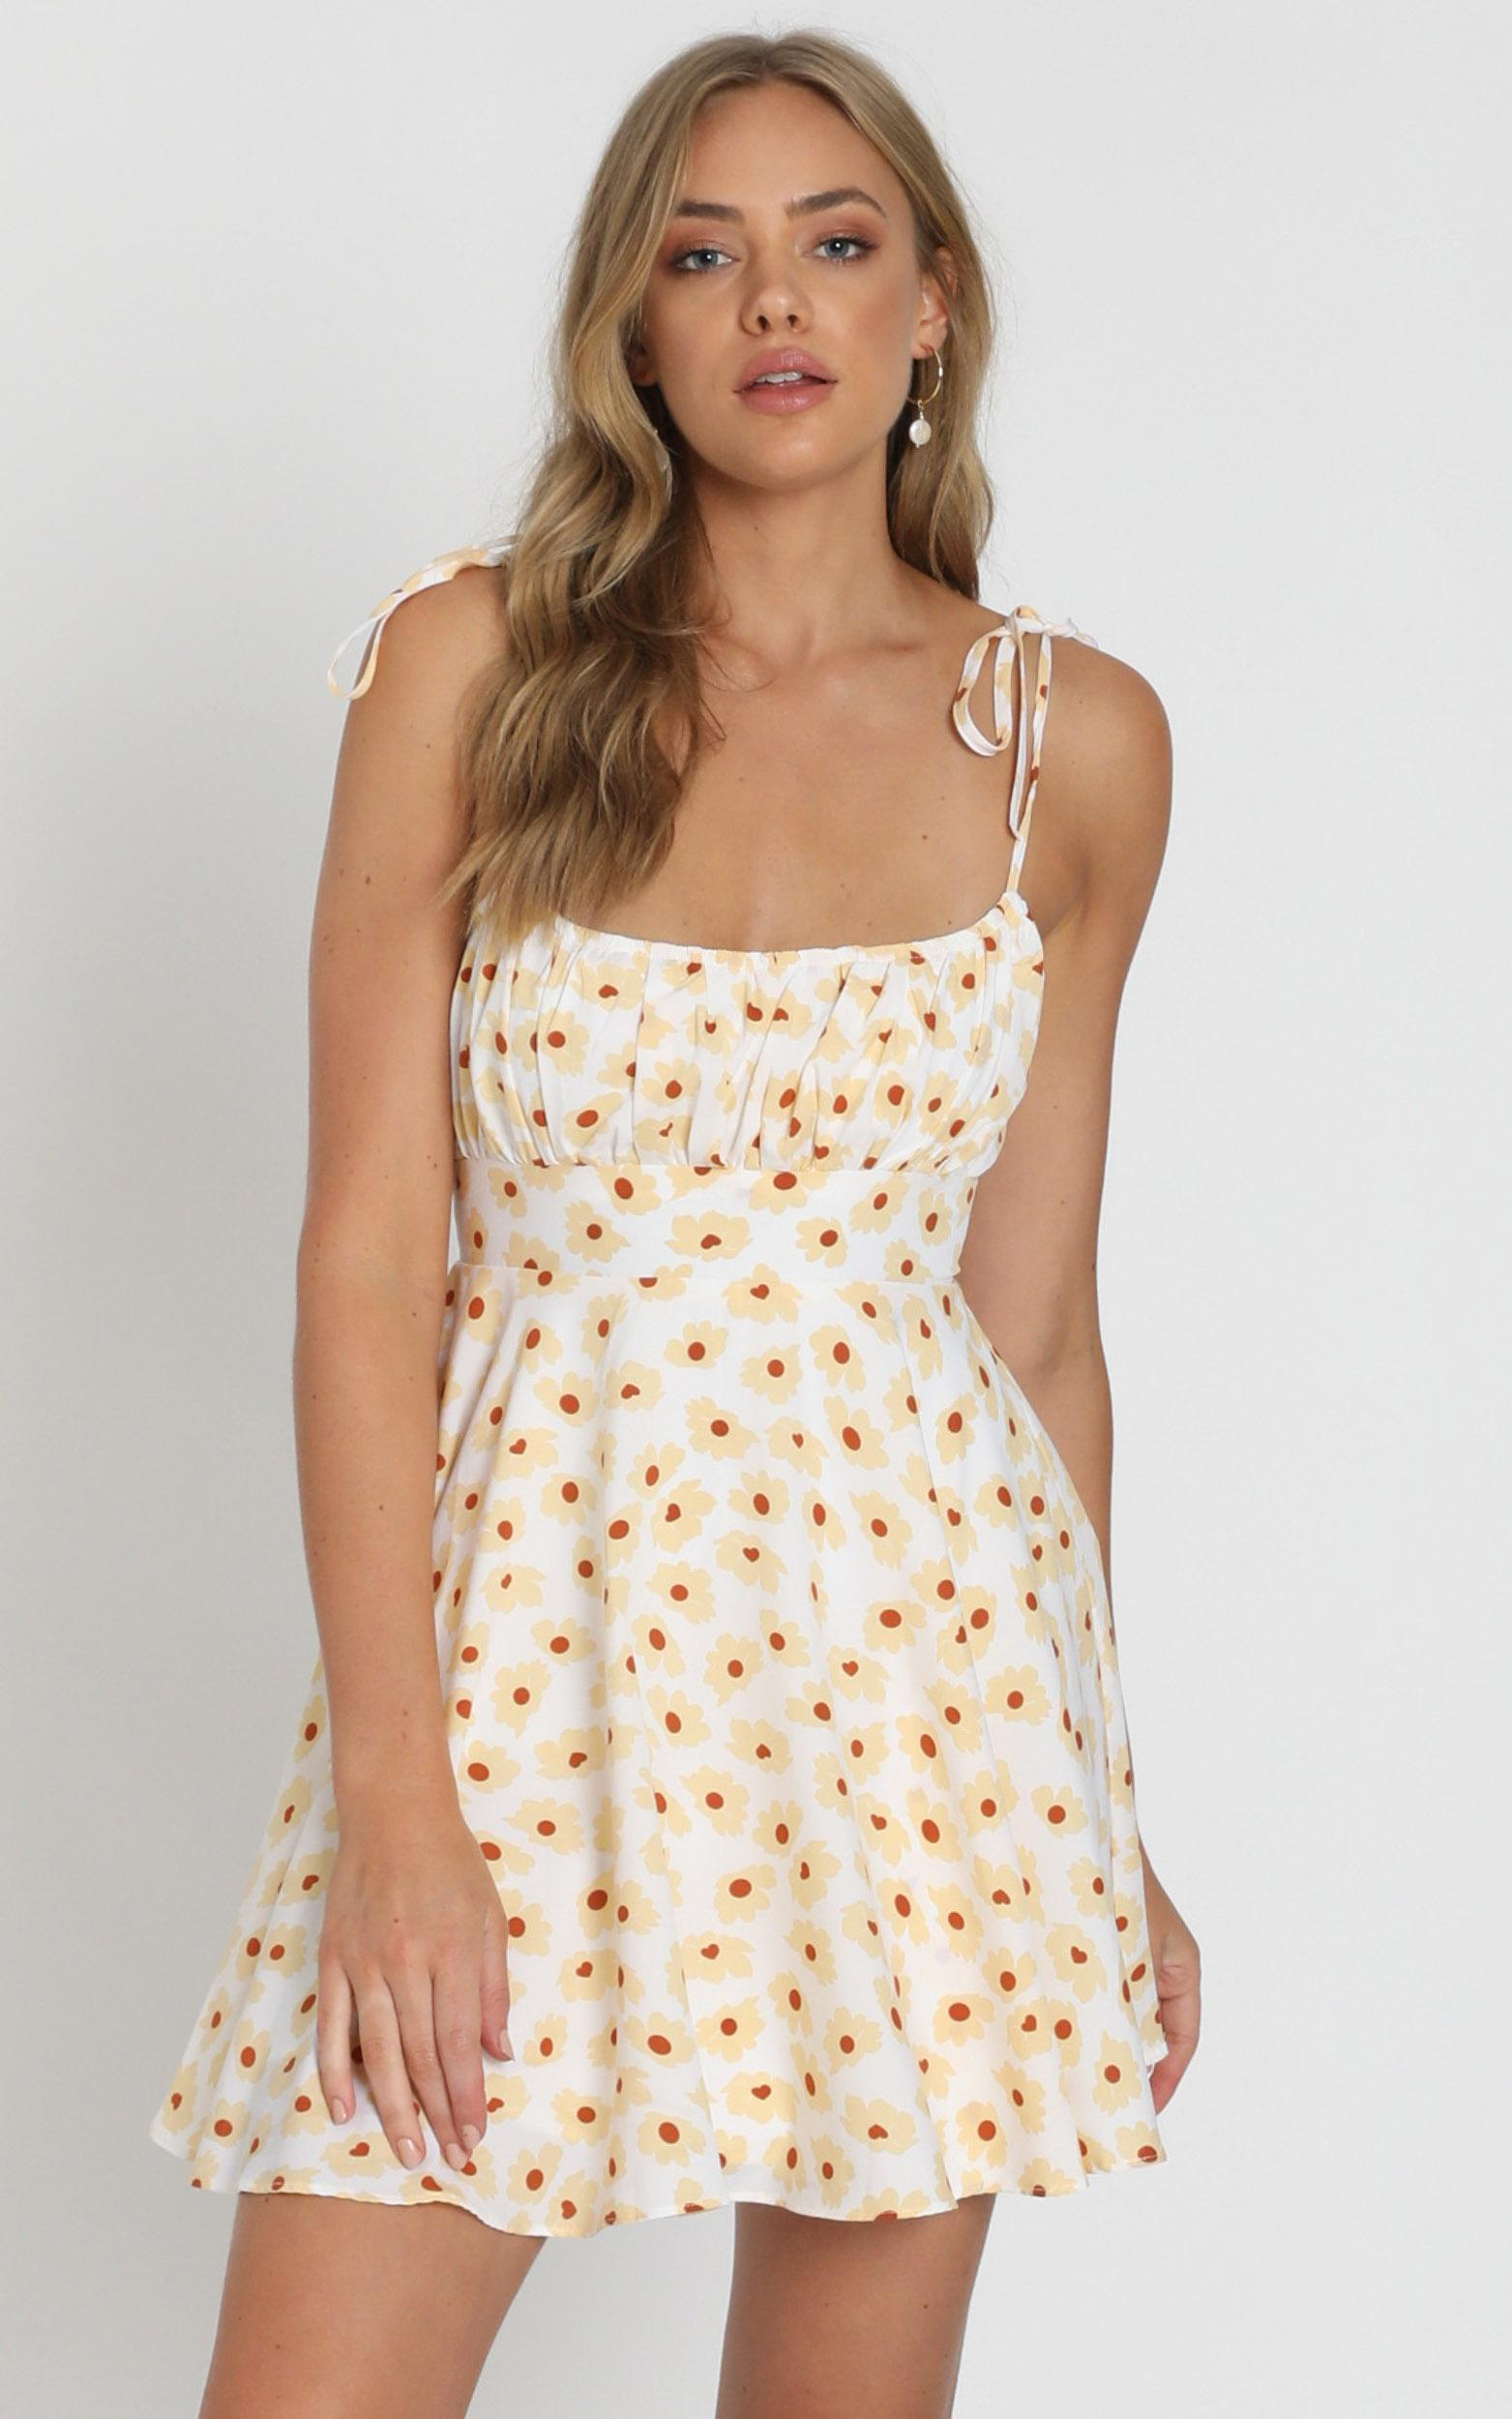 Summer Jam Dress in white floral - 20 (XXXXL), White, hi-res image number null